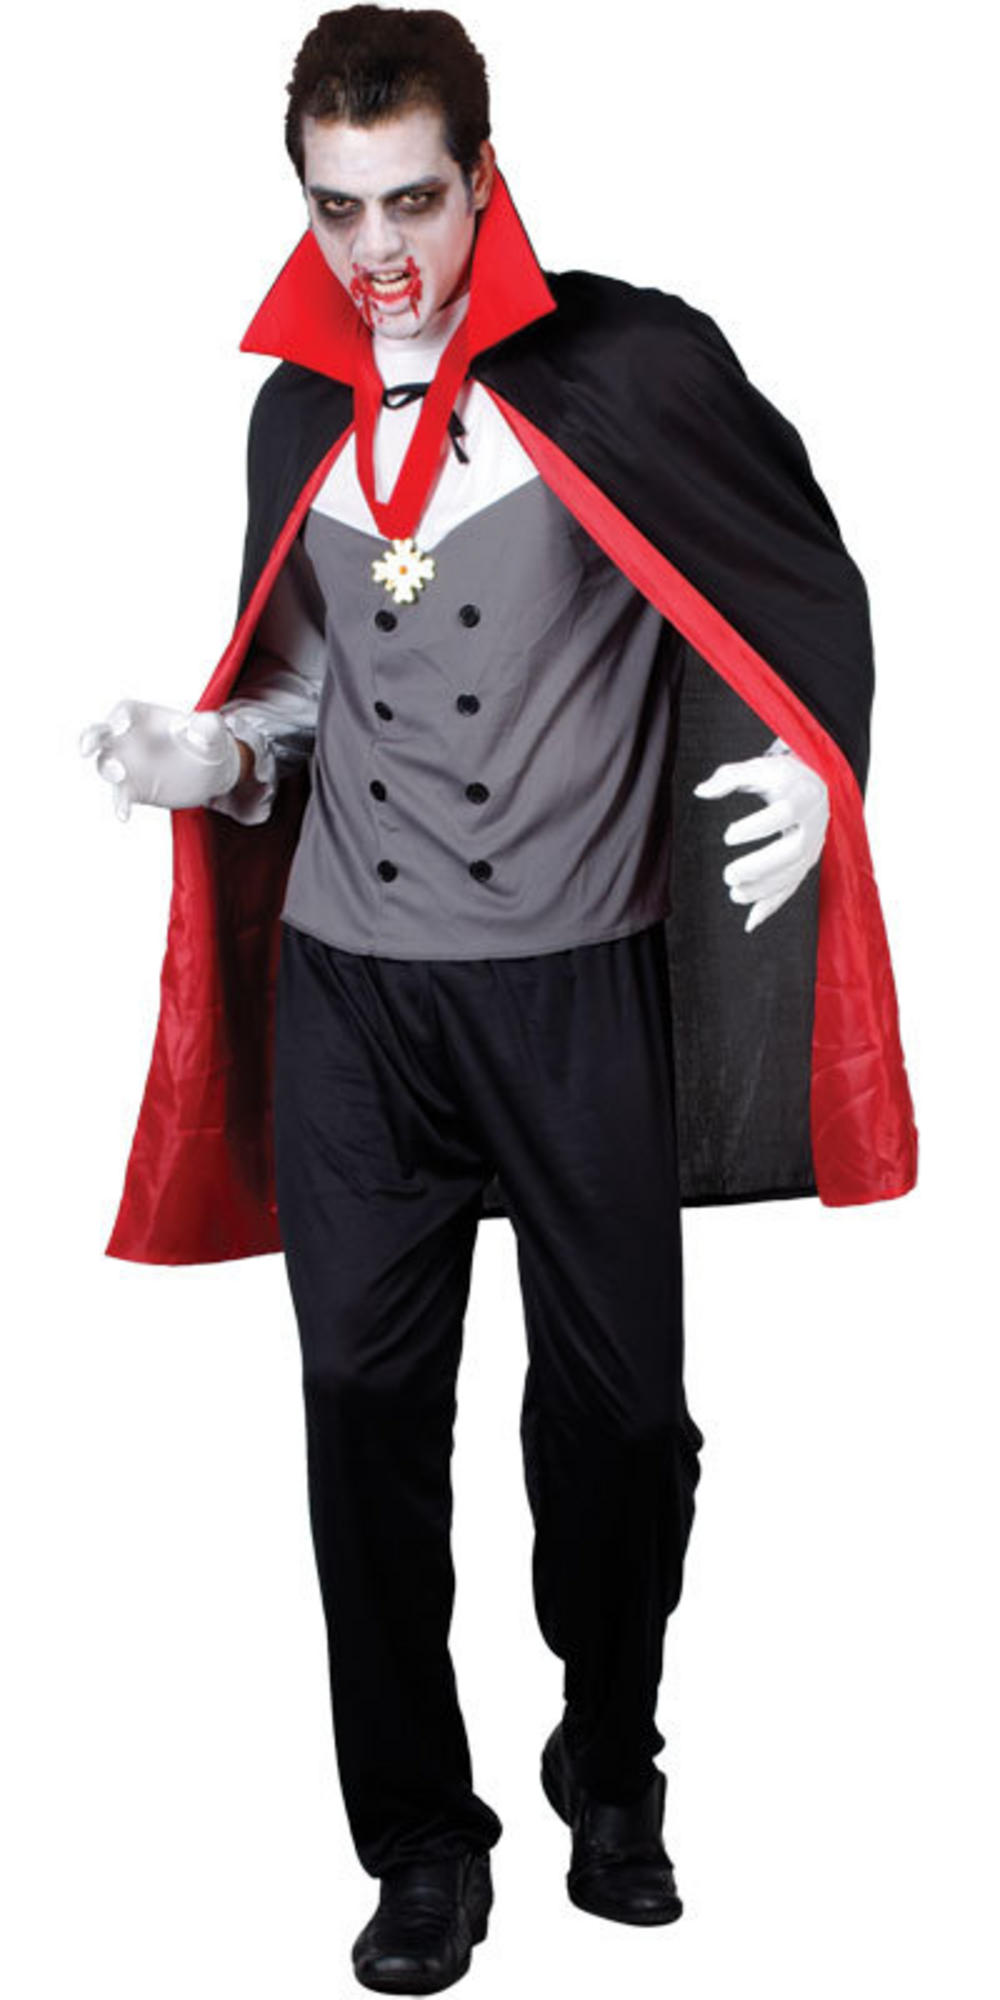 Vampire Man Costume Images & Pictures - Becuo